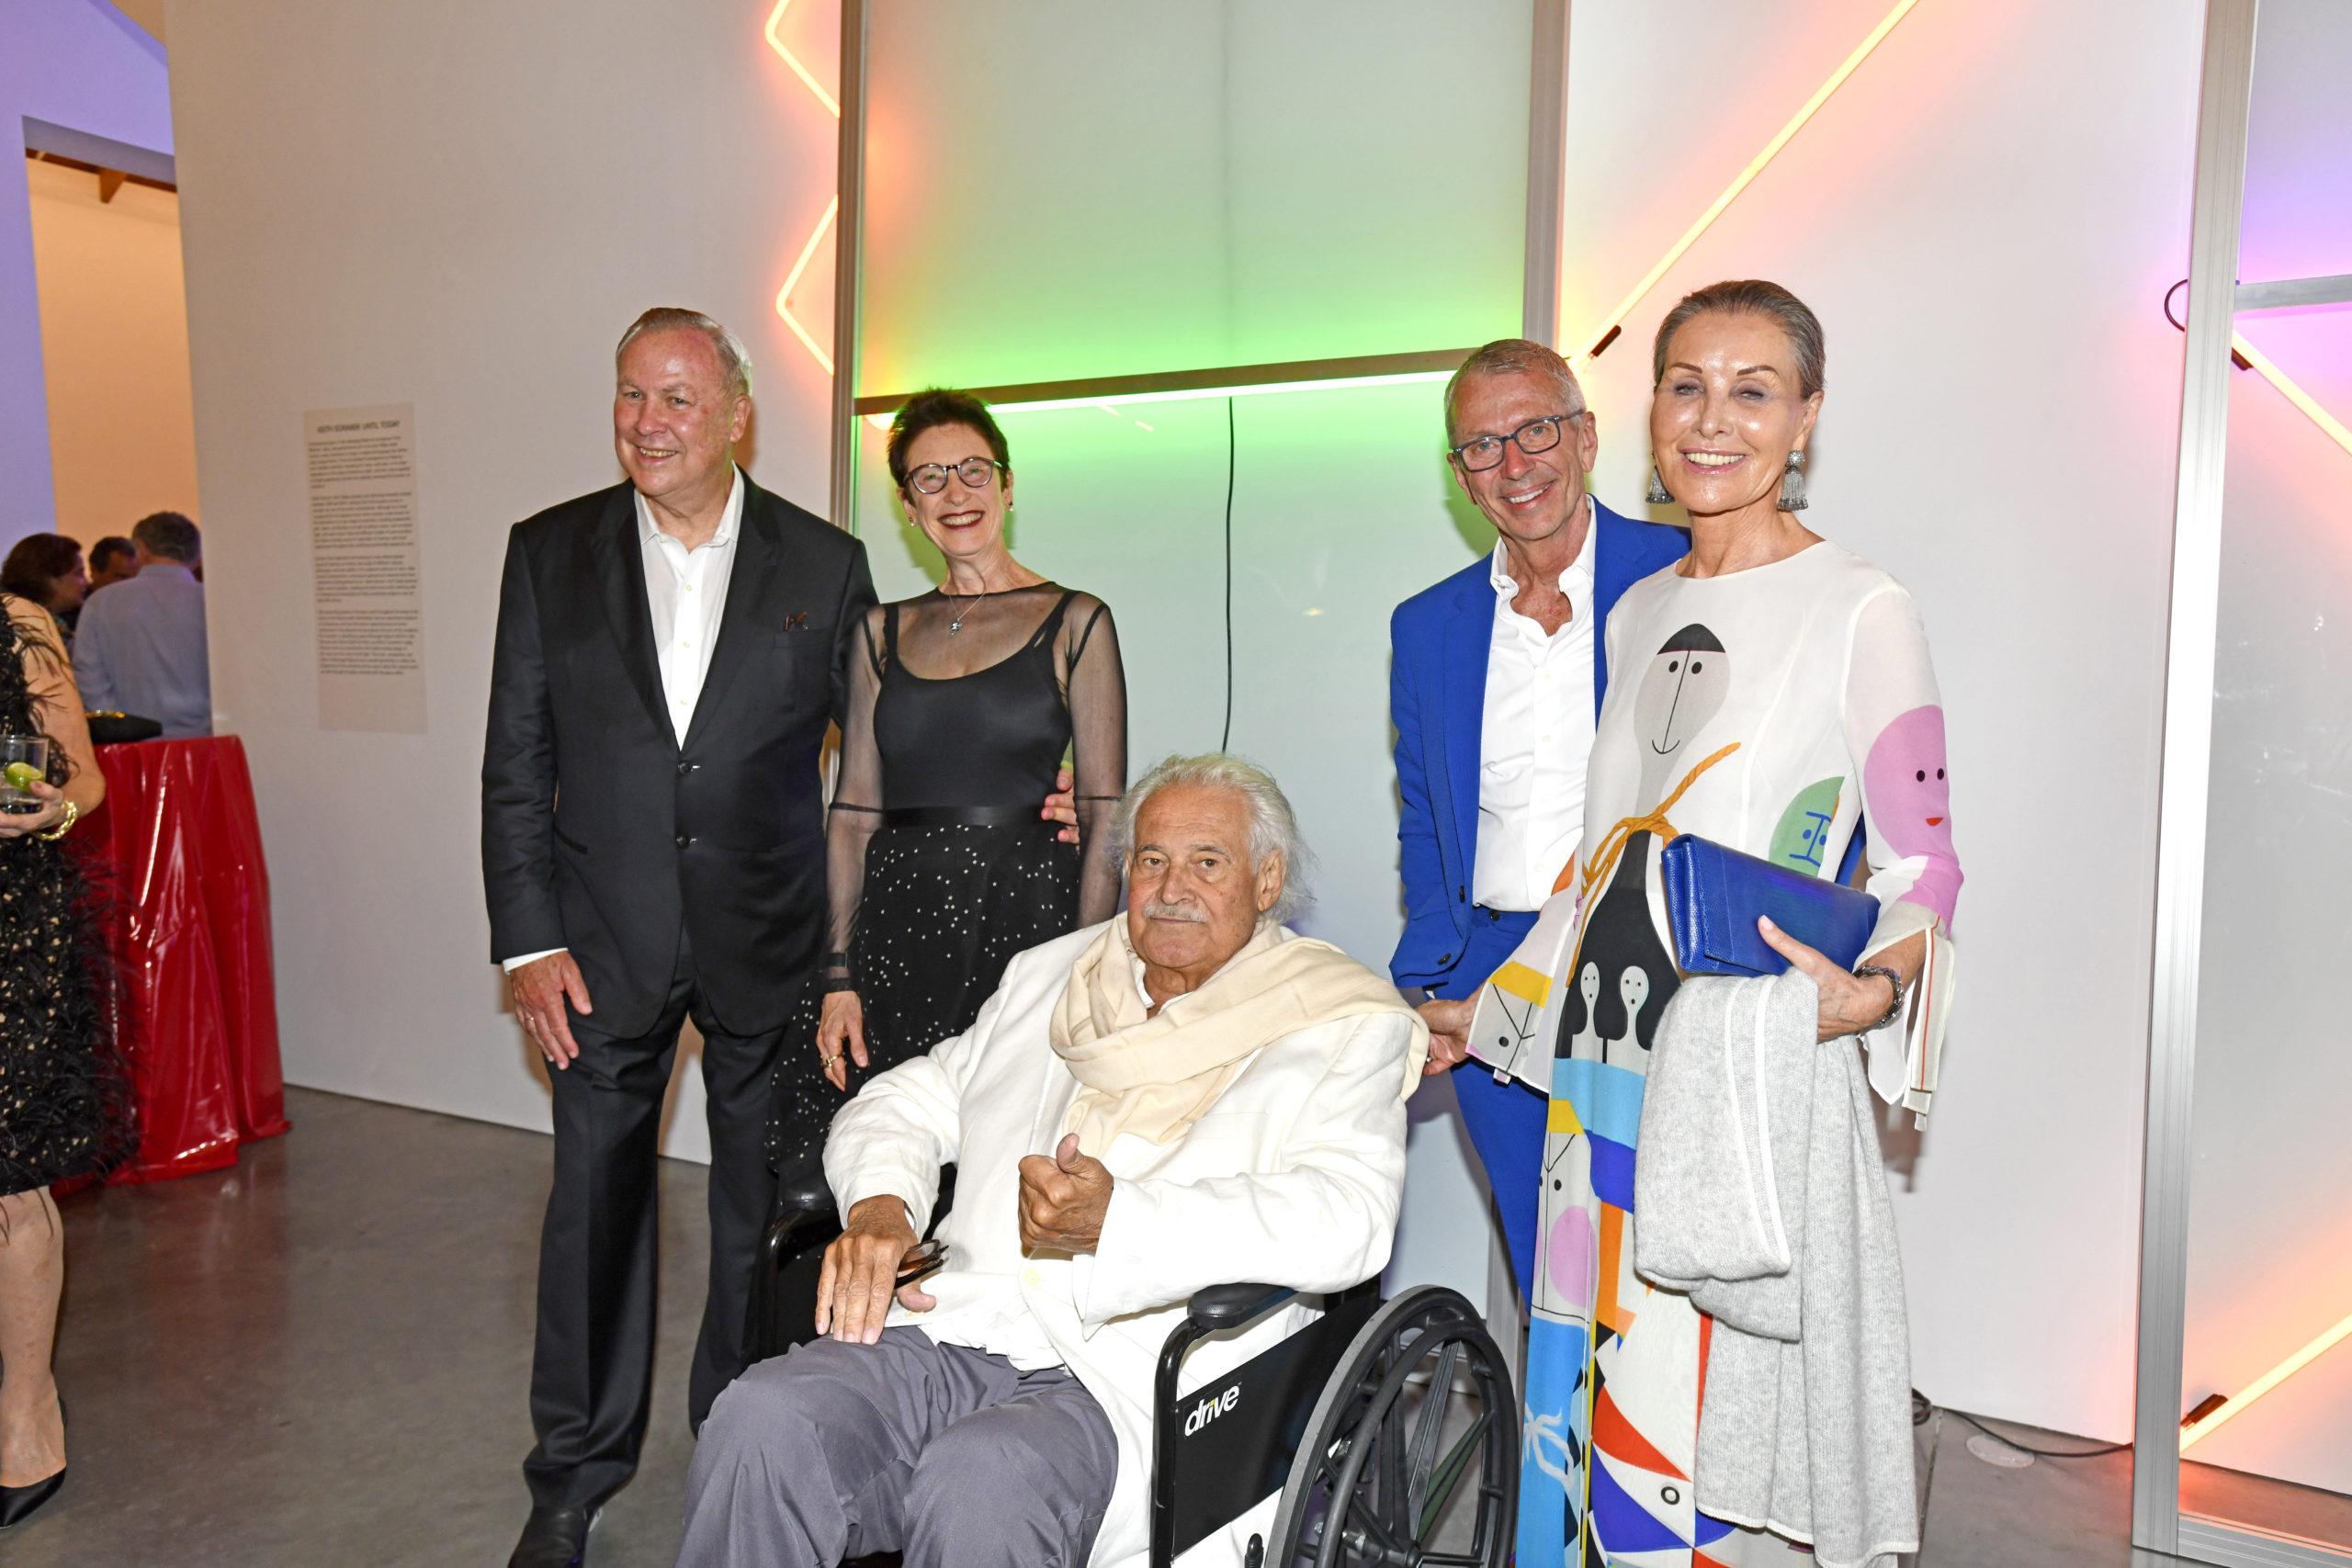 Keith Sonnier, center, with Robert Wilson, Terrie Sultan, Chad Leat and Maren Otto at the Parrish Art Musuem's 2018 gala.  PRESS FILE